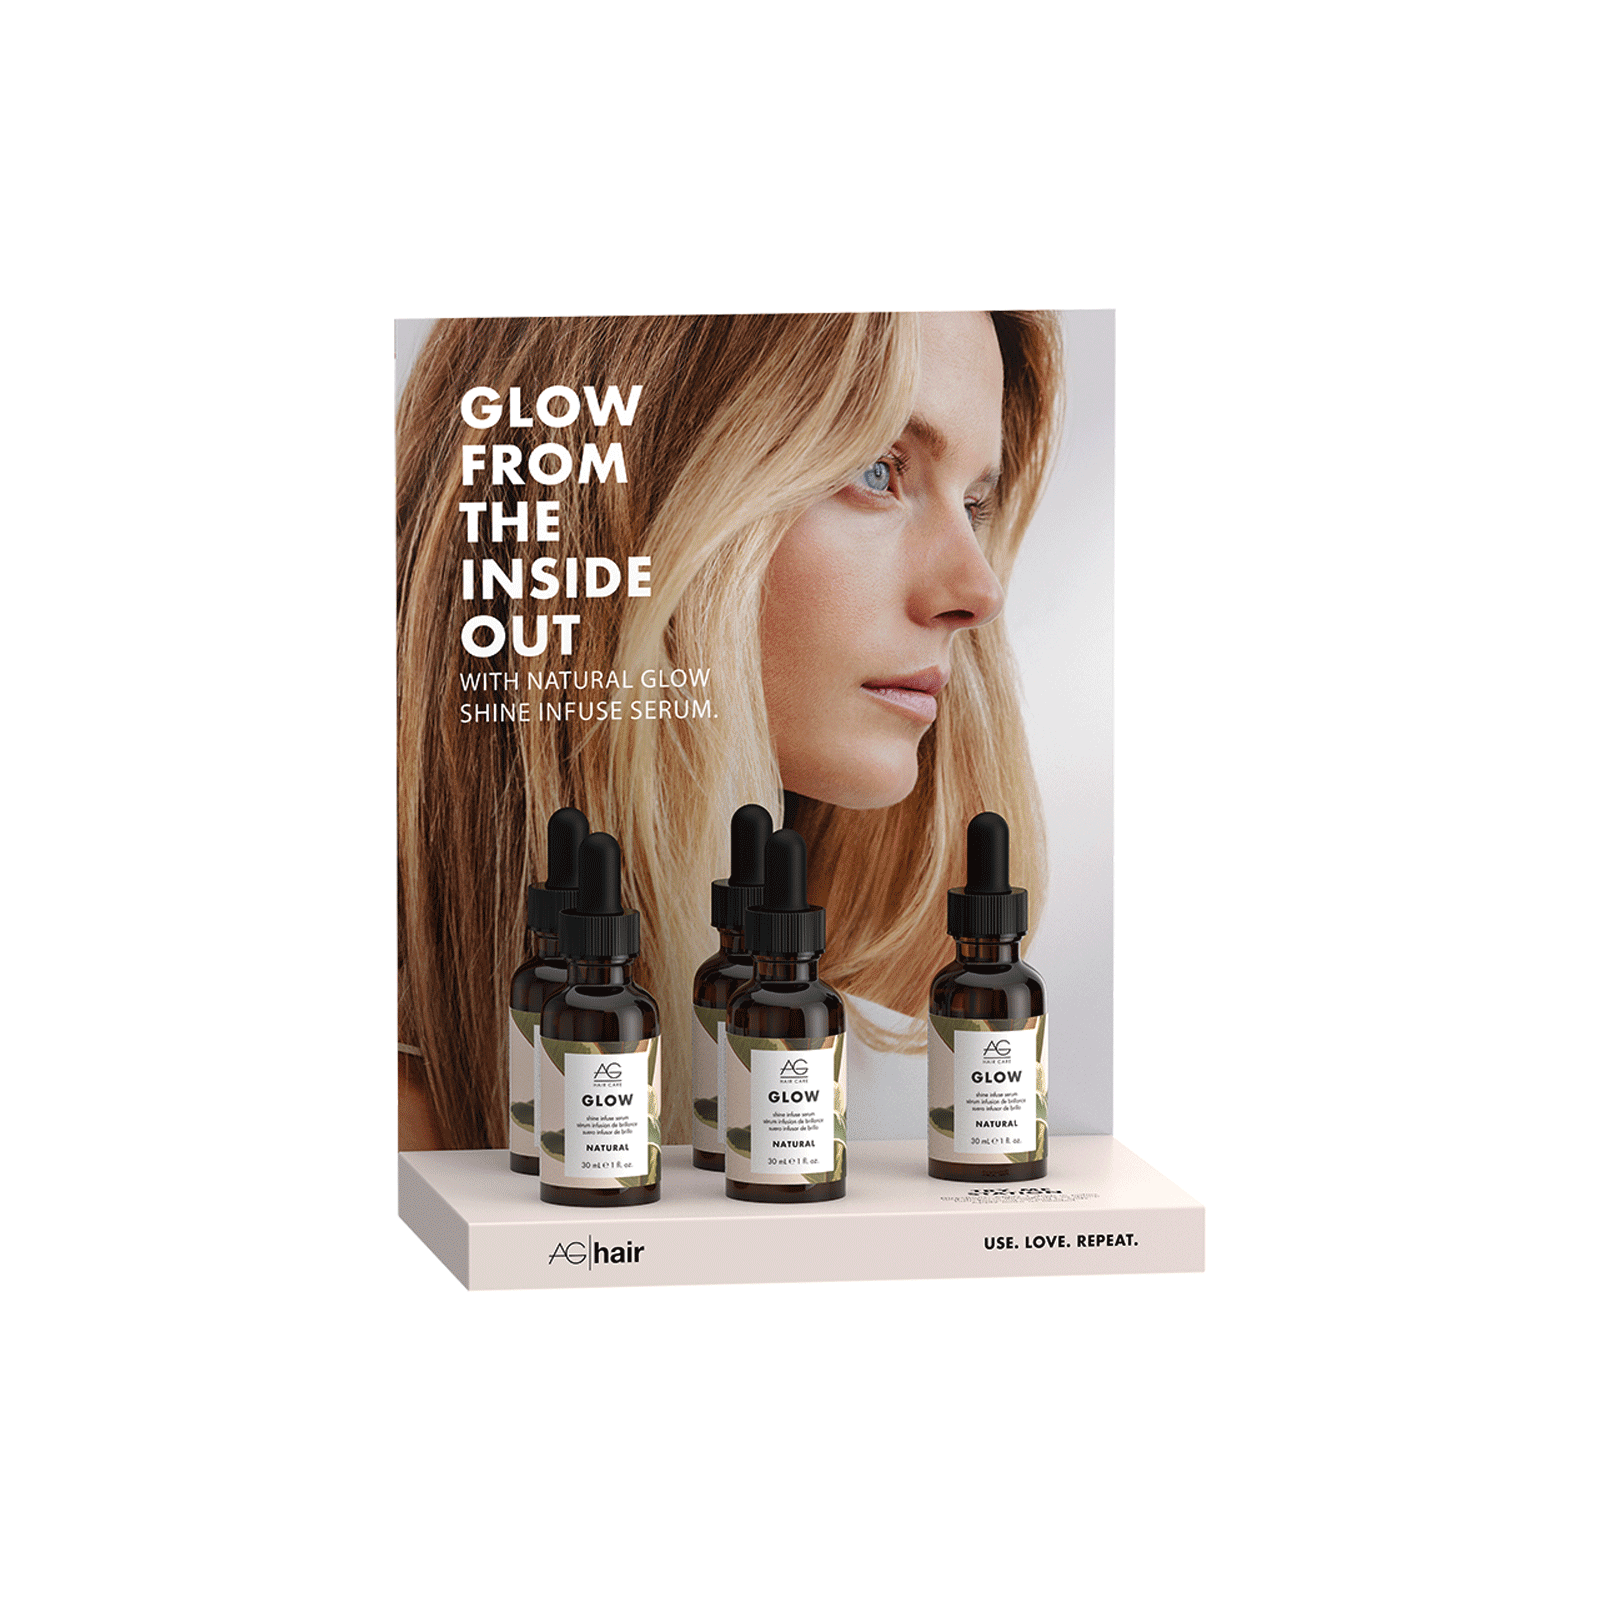 Glow Shine Infuse Serum 5 Count Display